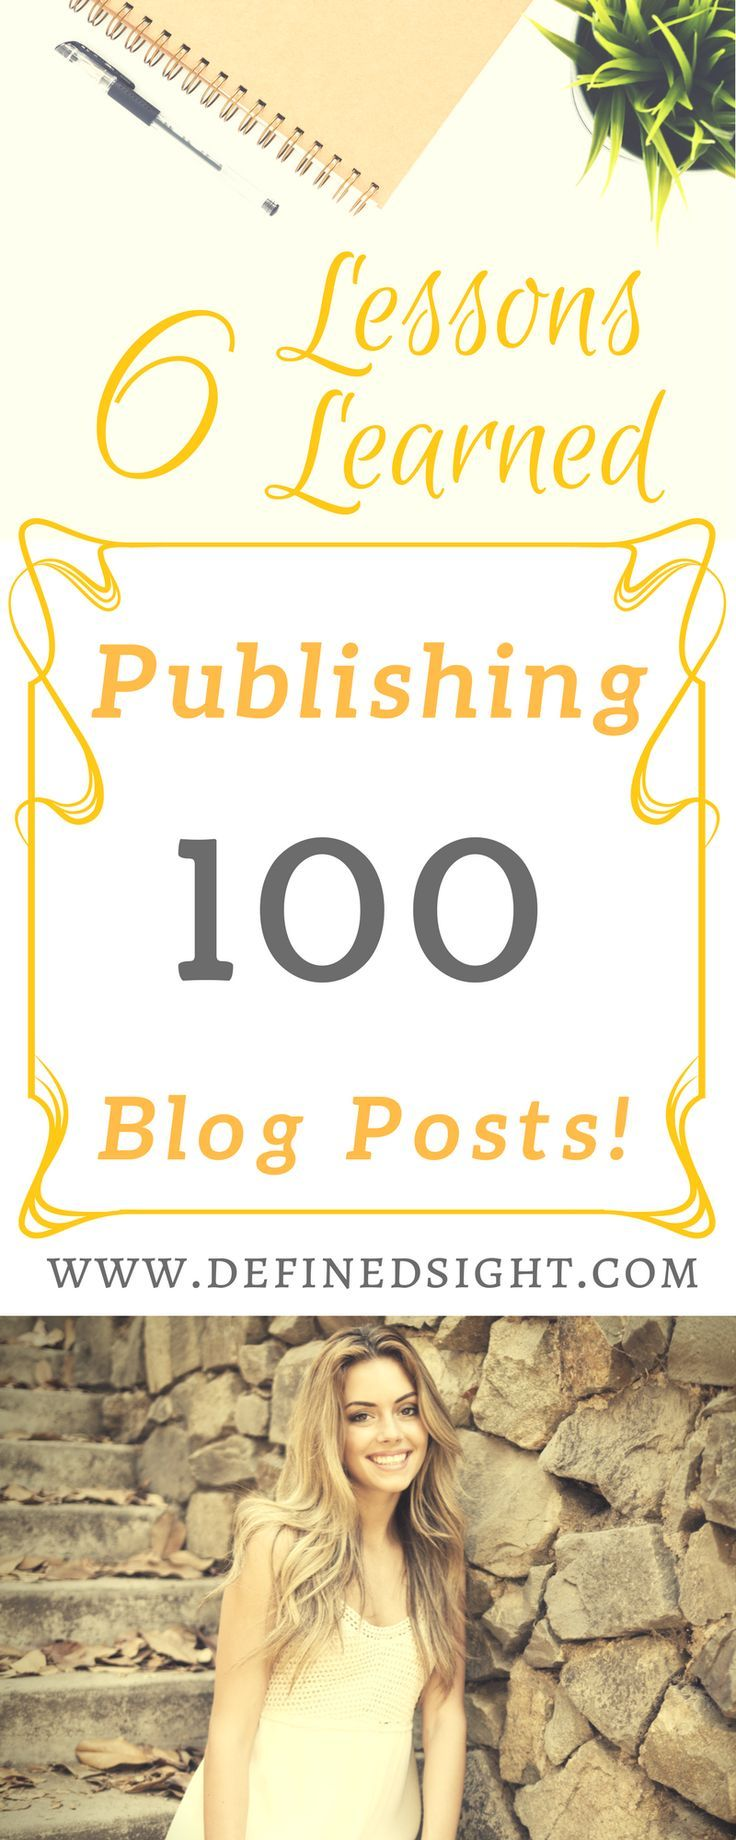 Defined Sight is celebrating their 100th Blog Post! They share their blogging lessons learned, goals with the blog and give credit where credit is due in the blogging community. Check it out, you may be listed too! #Blogging #HowToBlog #BloggingForBeginners #Lifestyle #PersonalDevelopment #ProfessionalDevelopment #Career #Finance #Budget #Savings #Richlifestyle #HowToBeHappy #BeMoreChill #DefinedSight